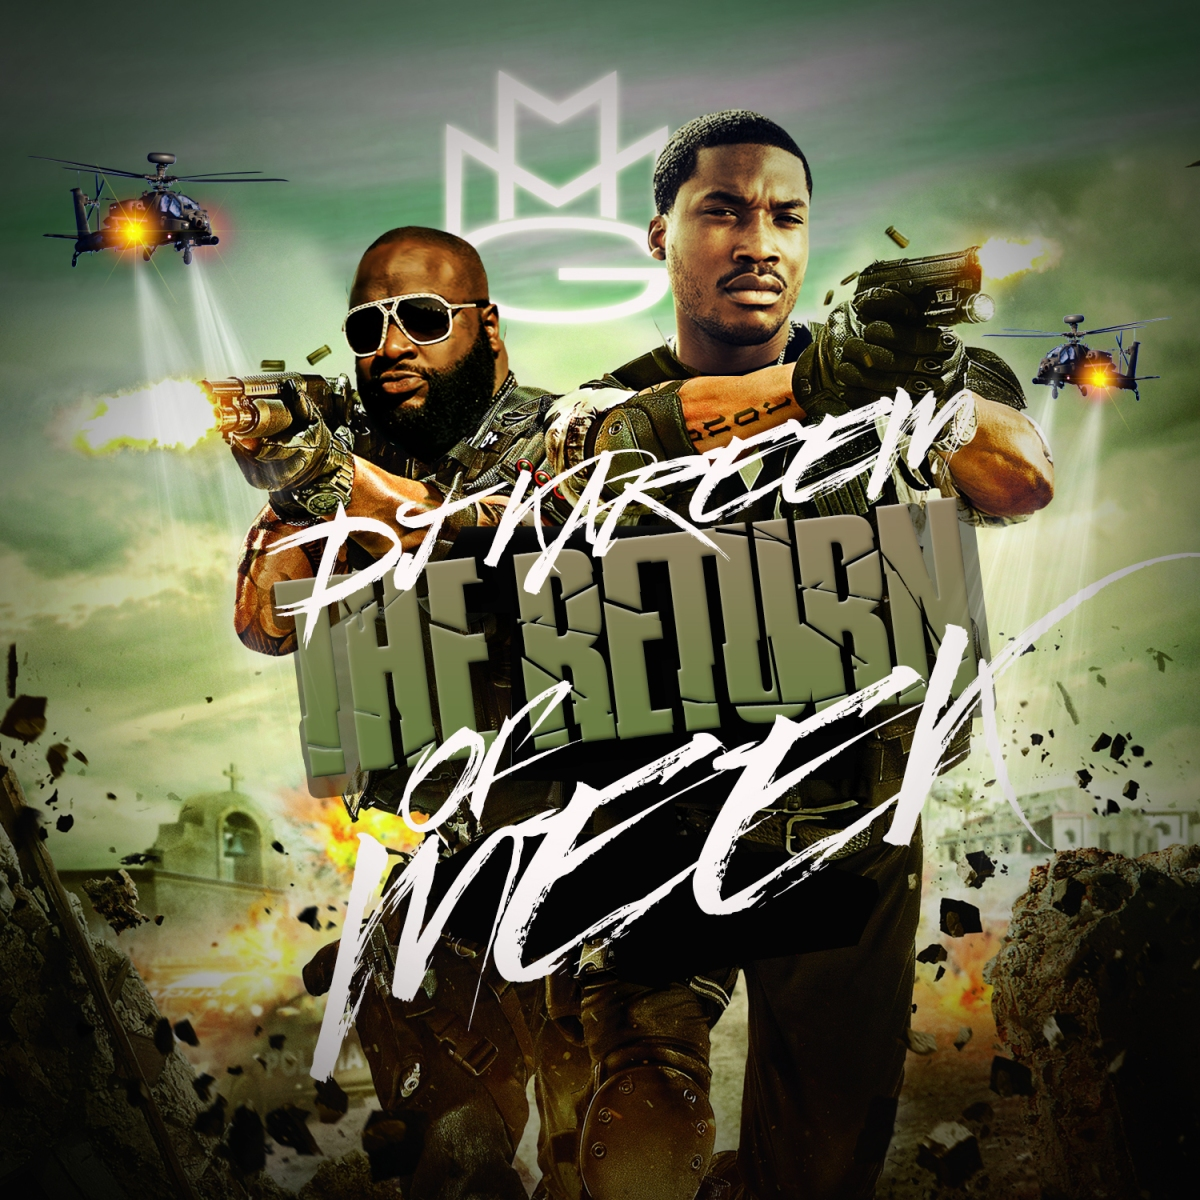 Dj Kareem Presents The Return Of Meek Mill Mix on SoundCloud